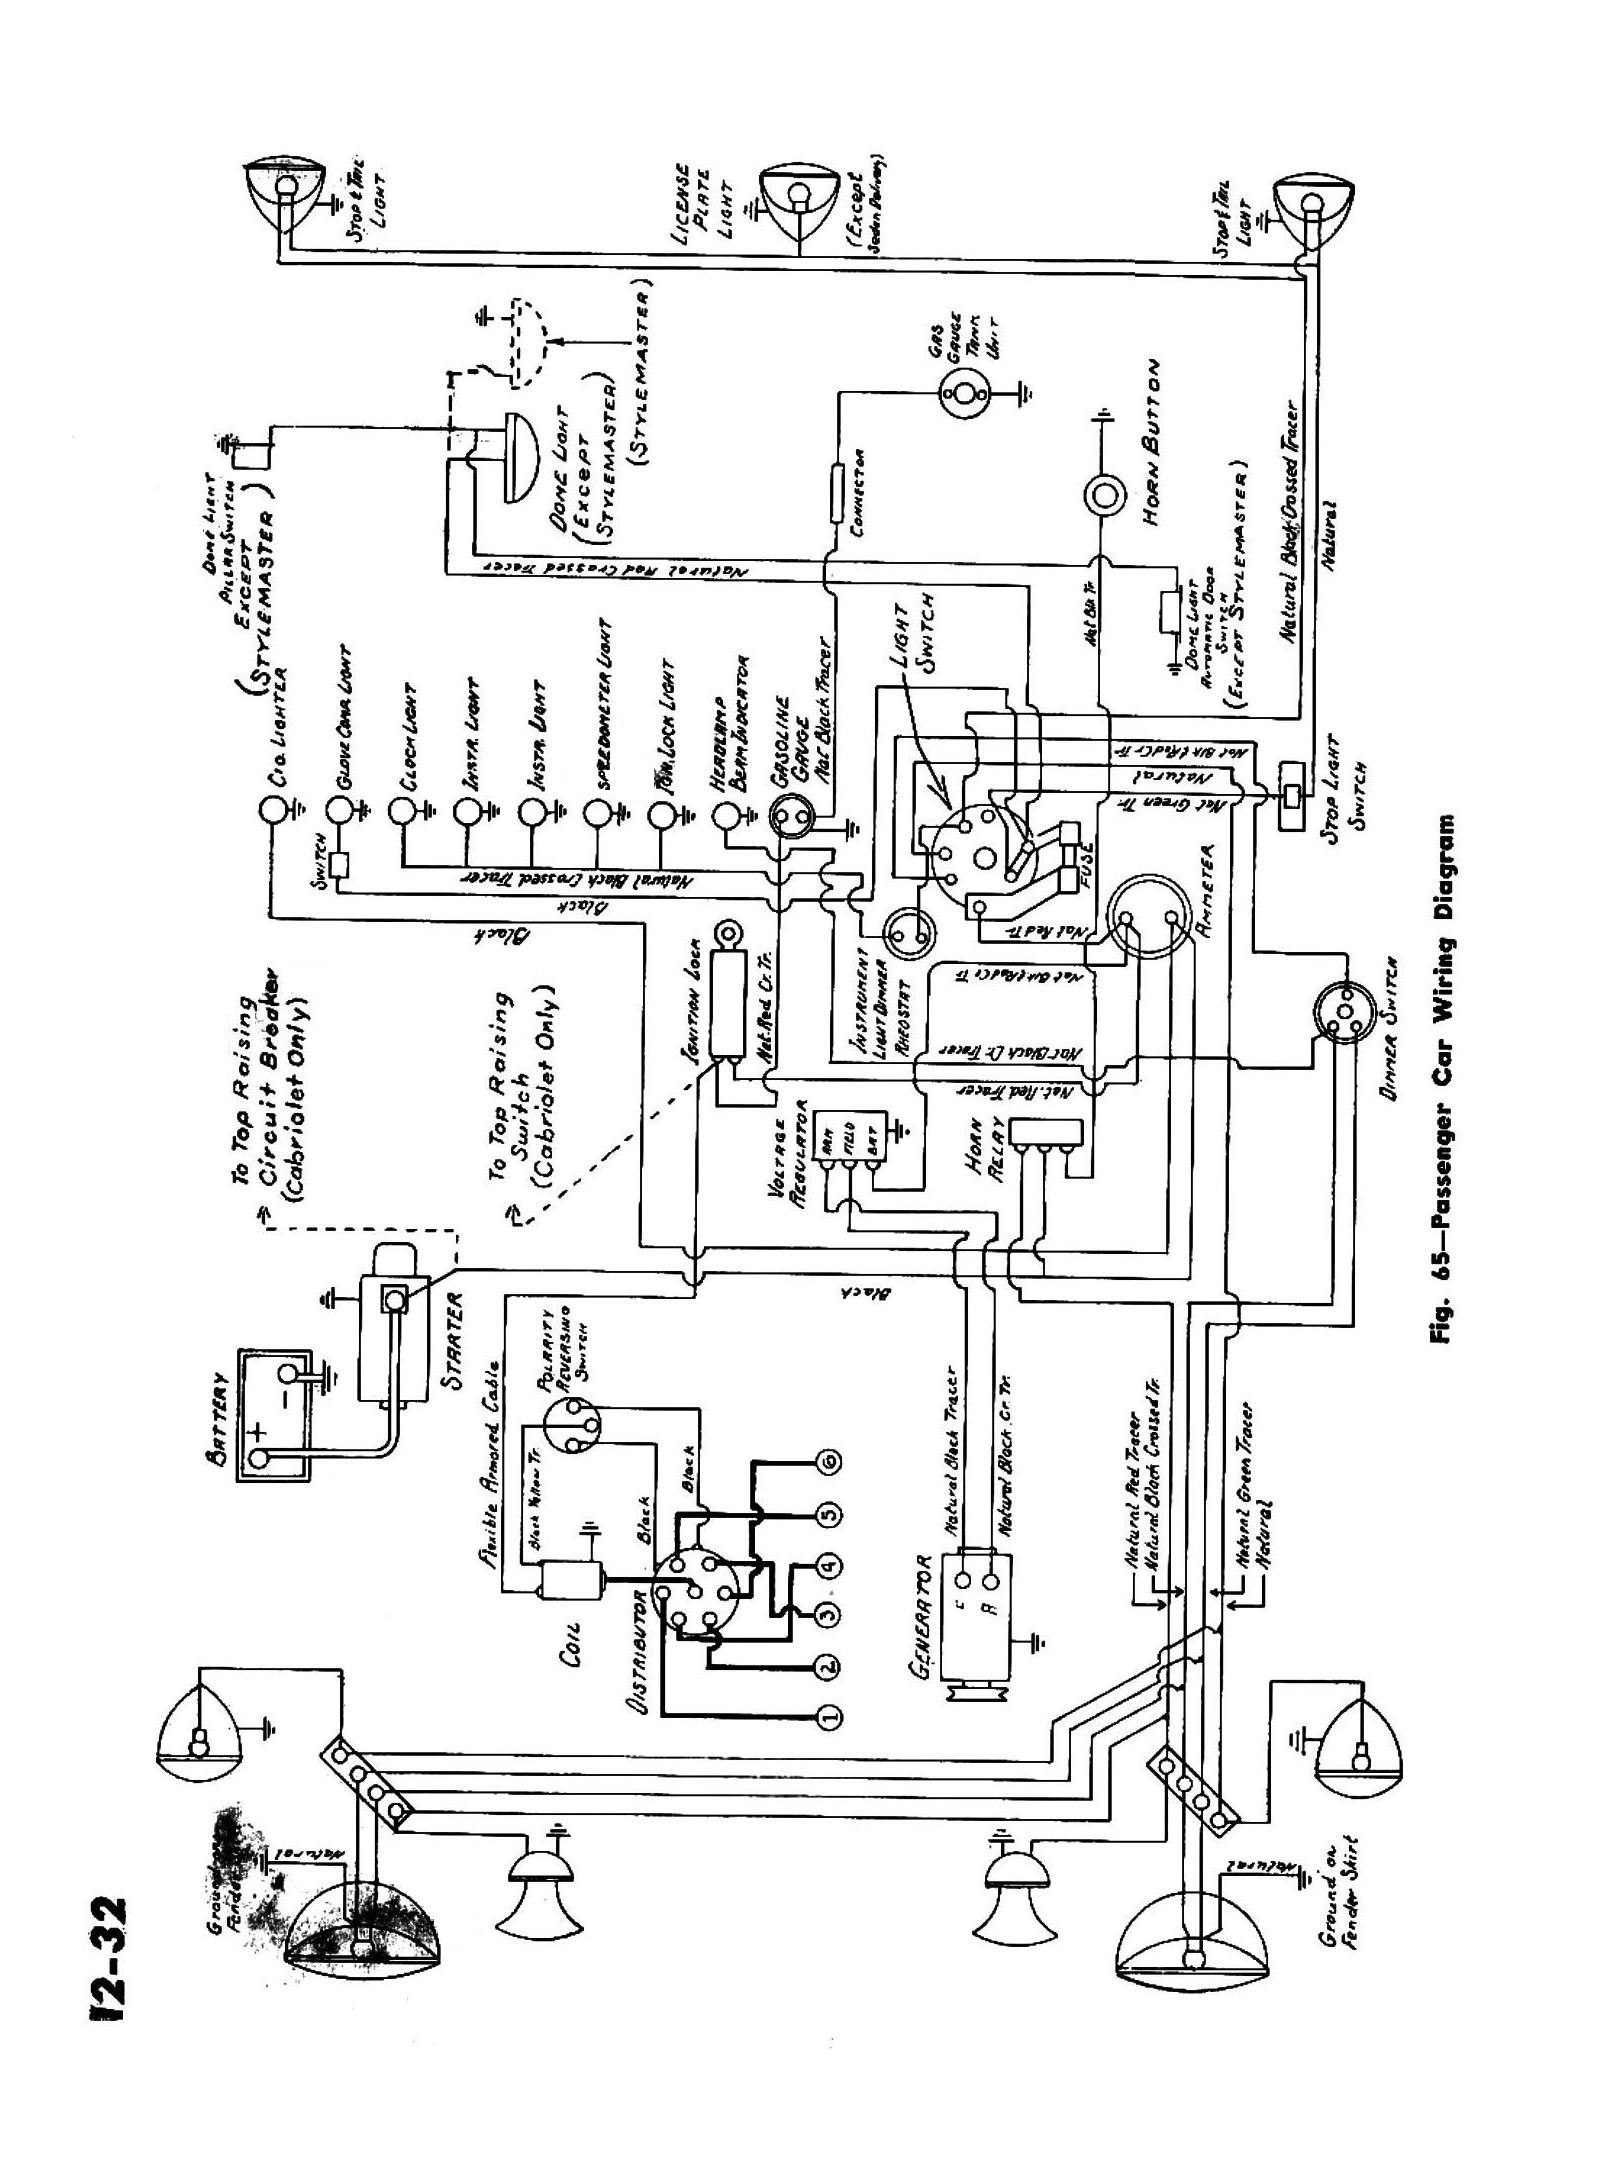 [QMVU_8575]  Automotive Wiring Harness Schematics - 05 Cummins Ecm Wiring Diagram -  corollaa.ke2x.jeanjaures37.fr | About Automotive Electrical Wiring Schematics |  | Wiring Diagram